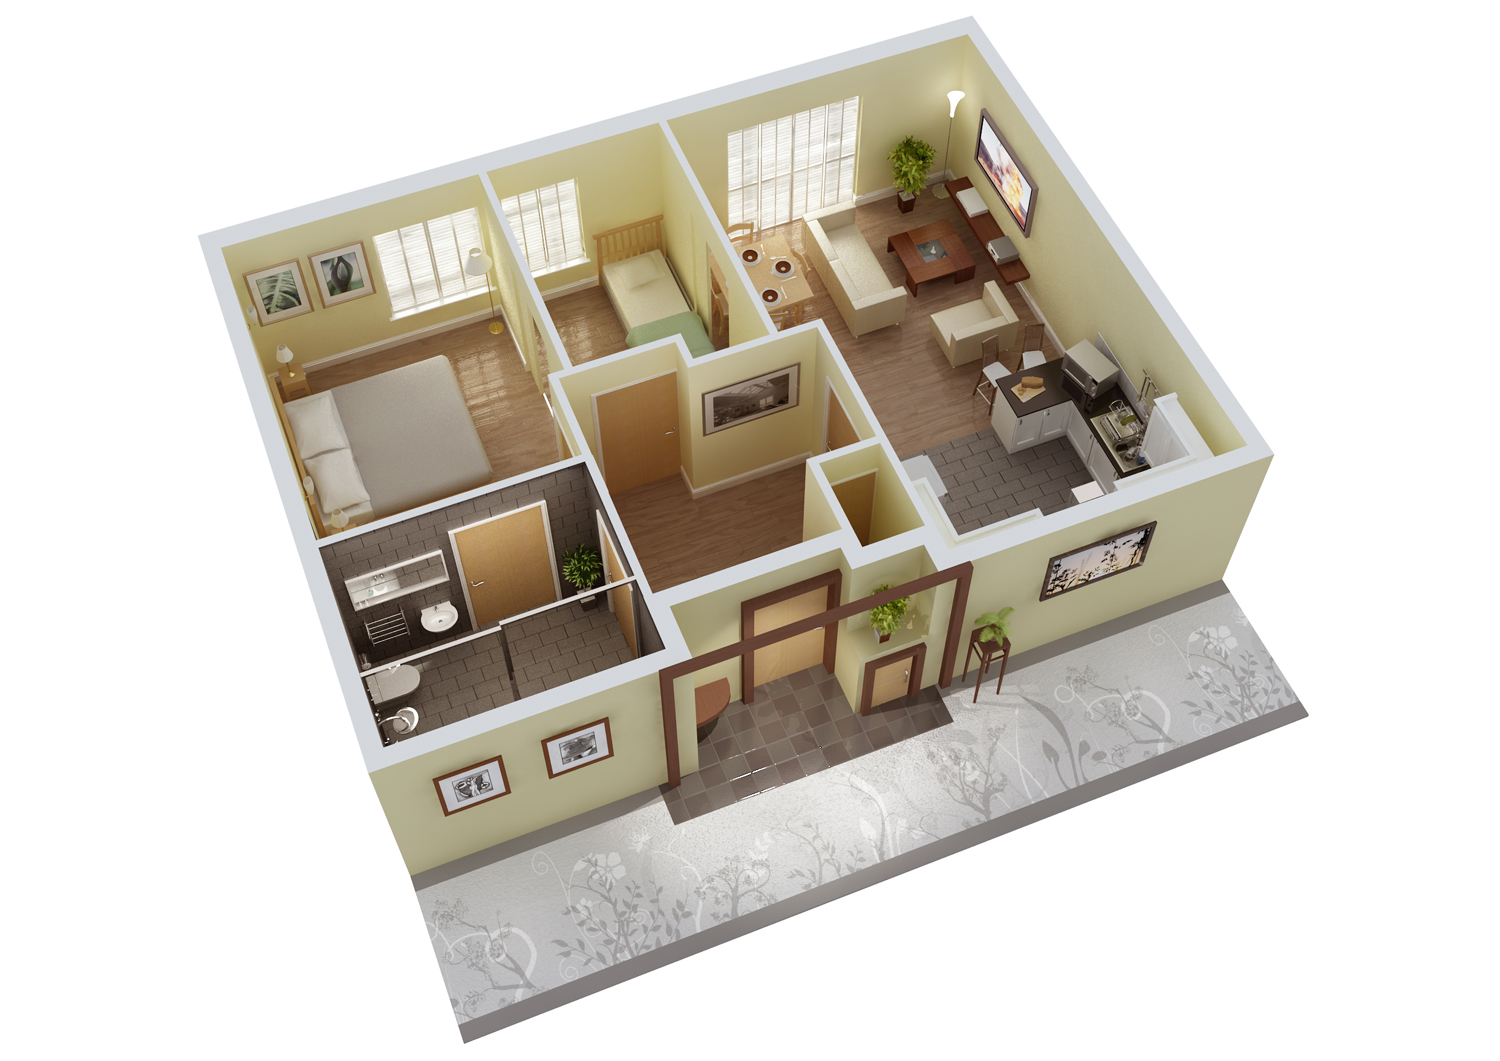 Mathematics resources project 3d floor plan Home plan 3d